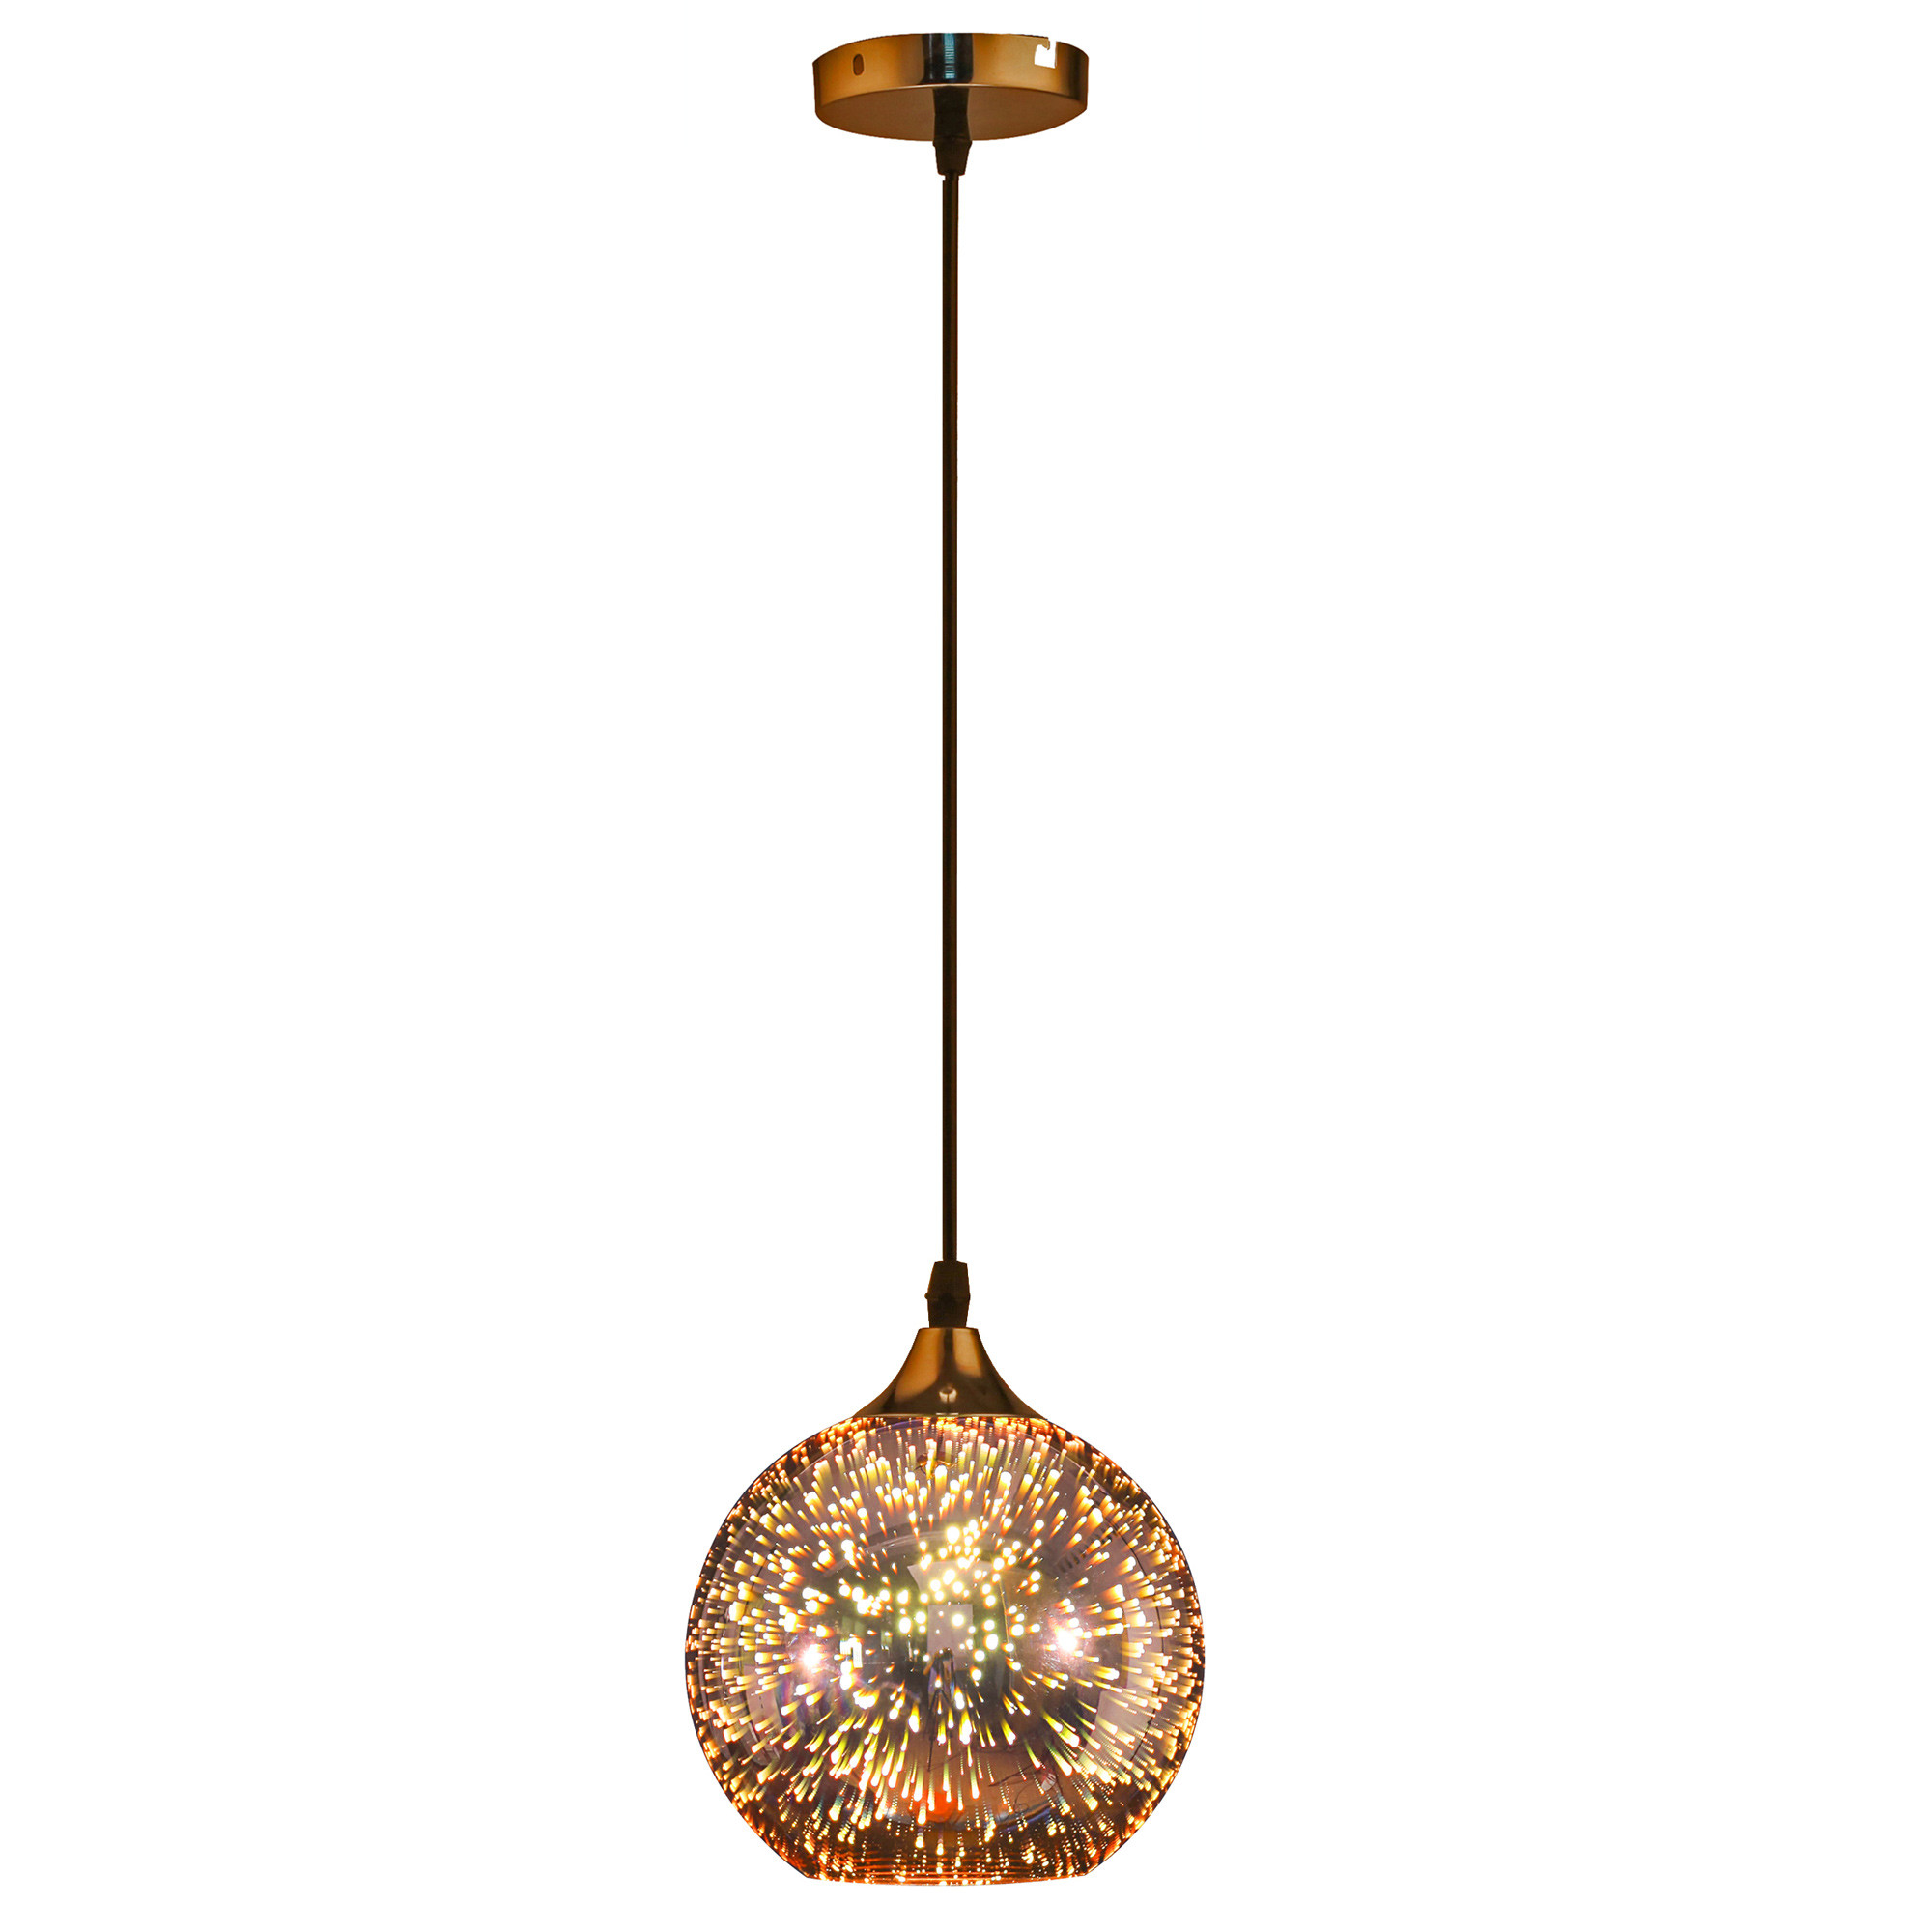 comet lighting. SKU #VMIM2185 Comet 3D Copper Pendant Light Is Also Sometimes Listed Under The Following Manufacturer Numbers: 0069-ITALUX , 0070-ITALUX Lighting